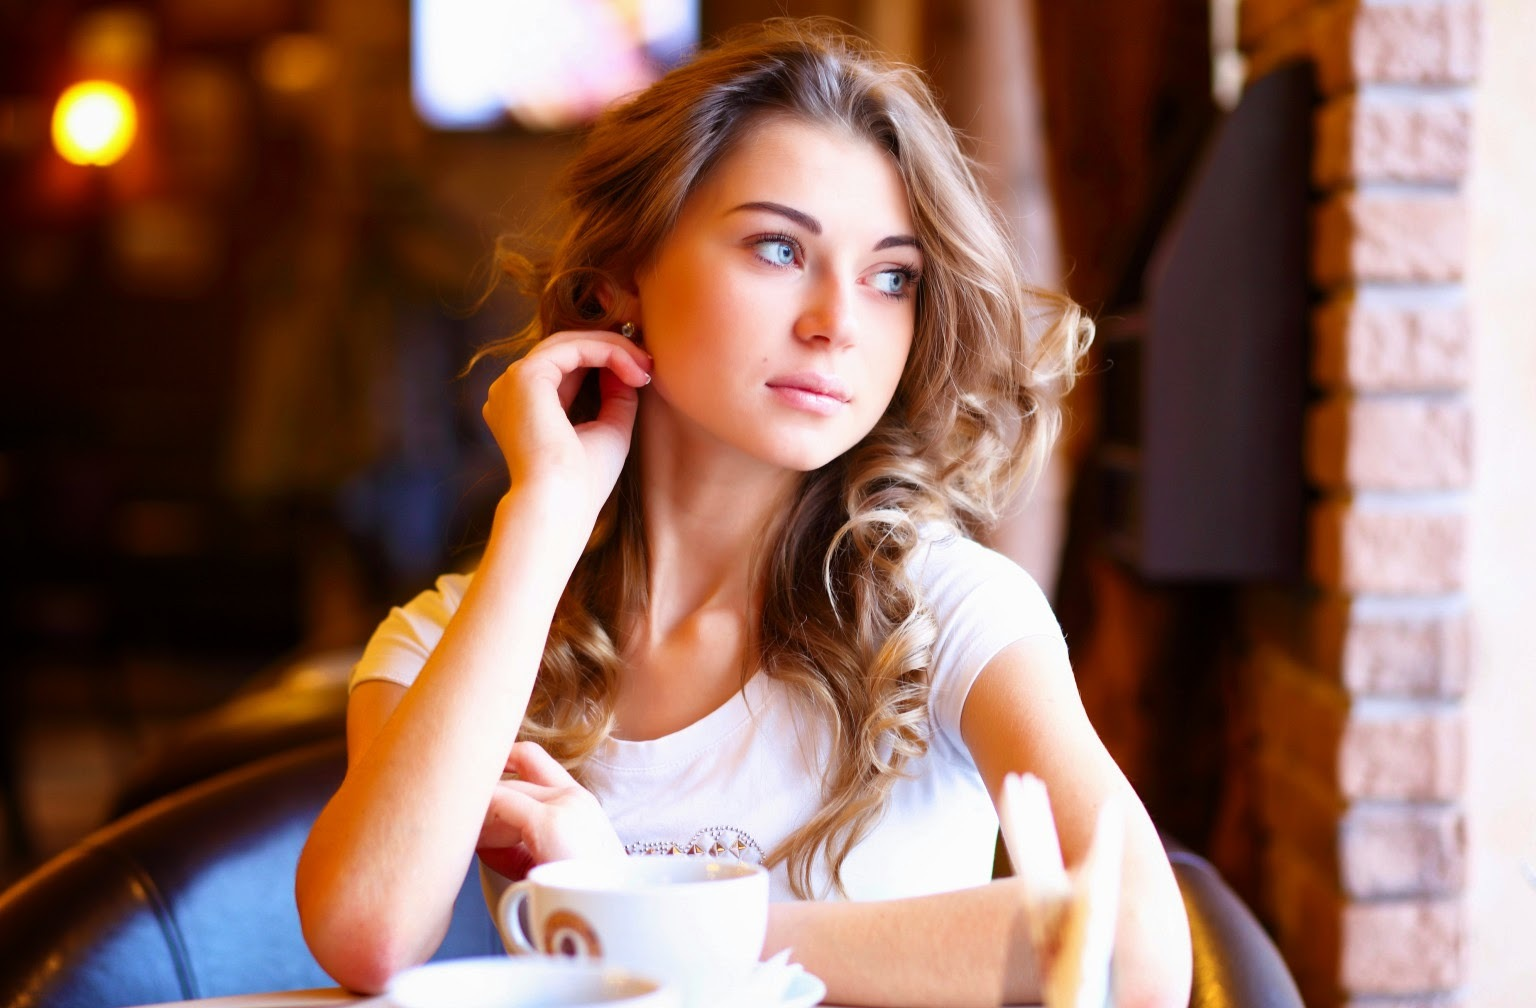 Russian Brides : Meet Russian Women for Serious Relationship & Marriage